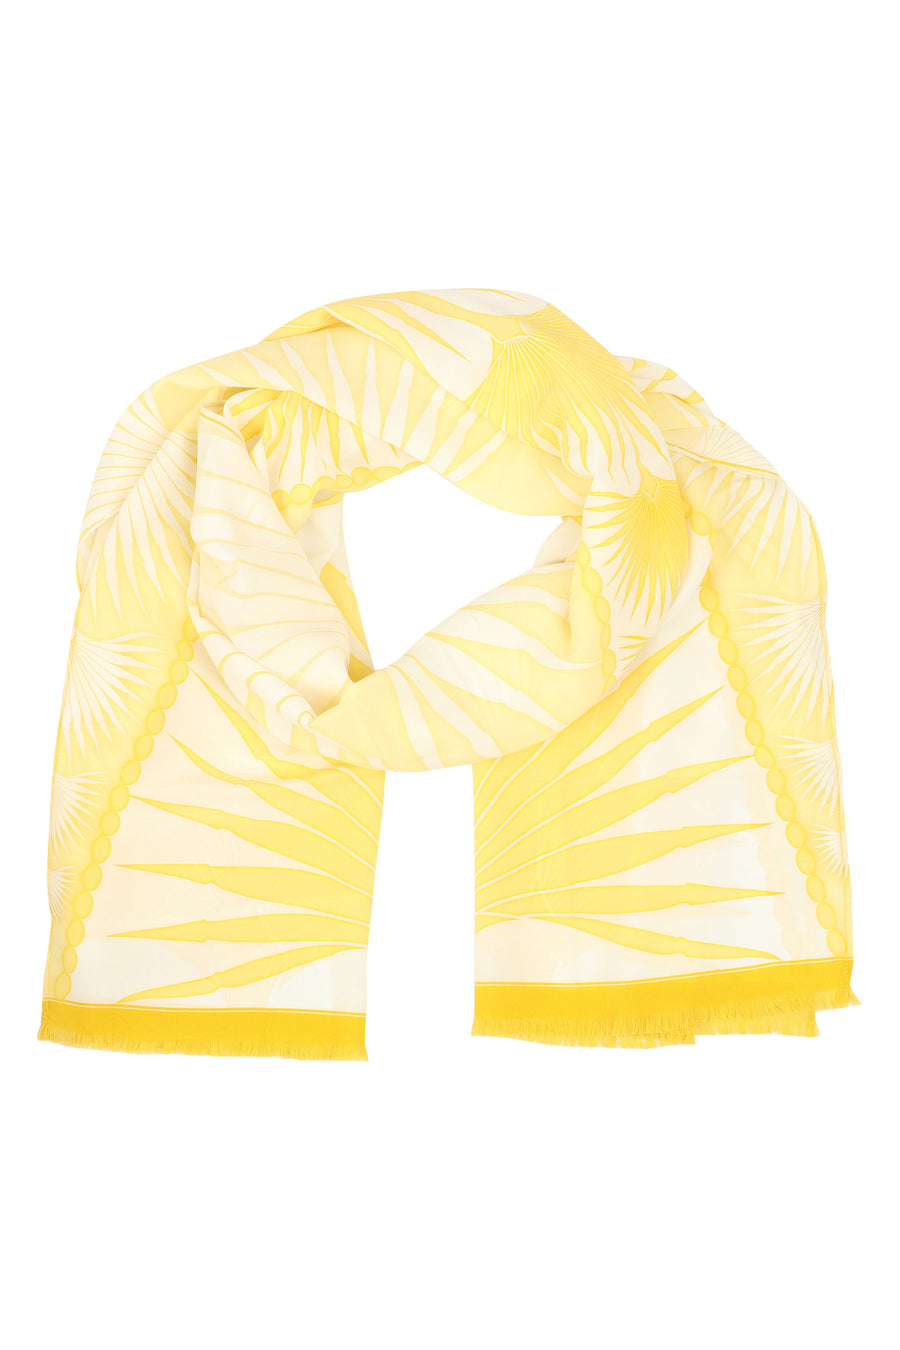 Lotty B Silk Long Silk Scarf: FAN PALM - YELLOW worn with yellow Fan Palm bikini. Luxury resortwear, designer Lotty B Mustique